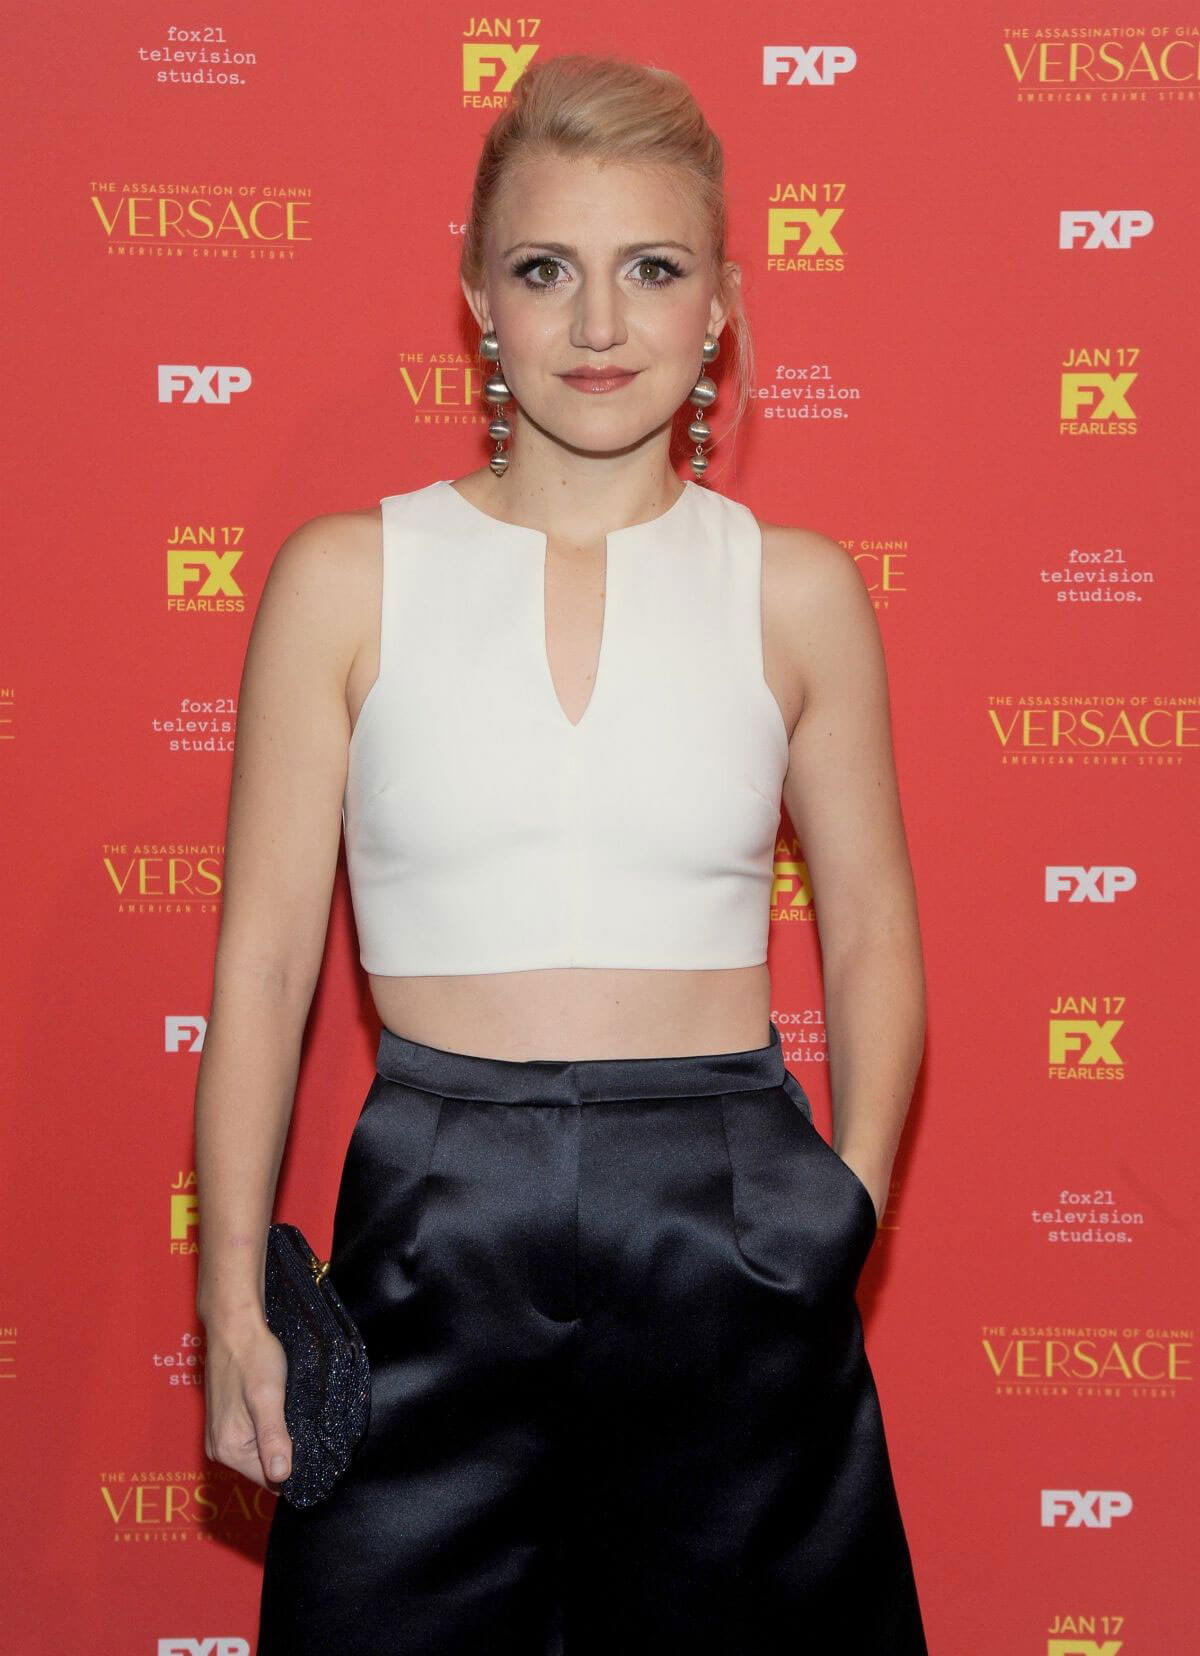 Ass Cleavage Annaleigh Ashford naked photo 2017